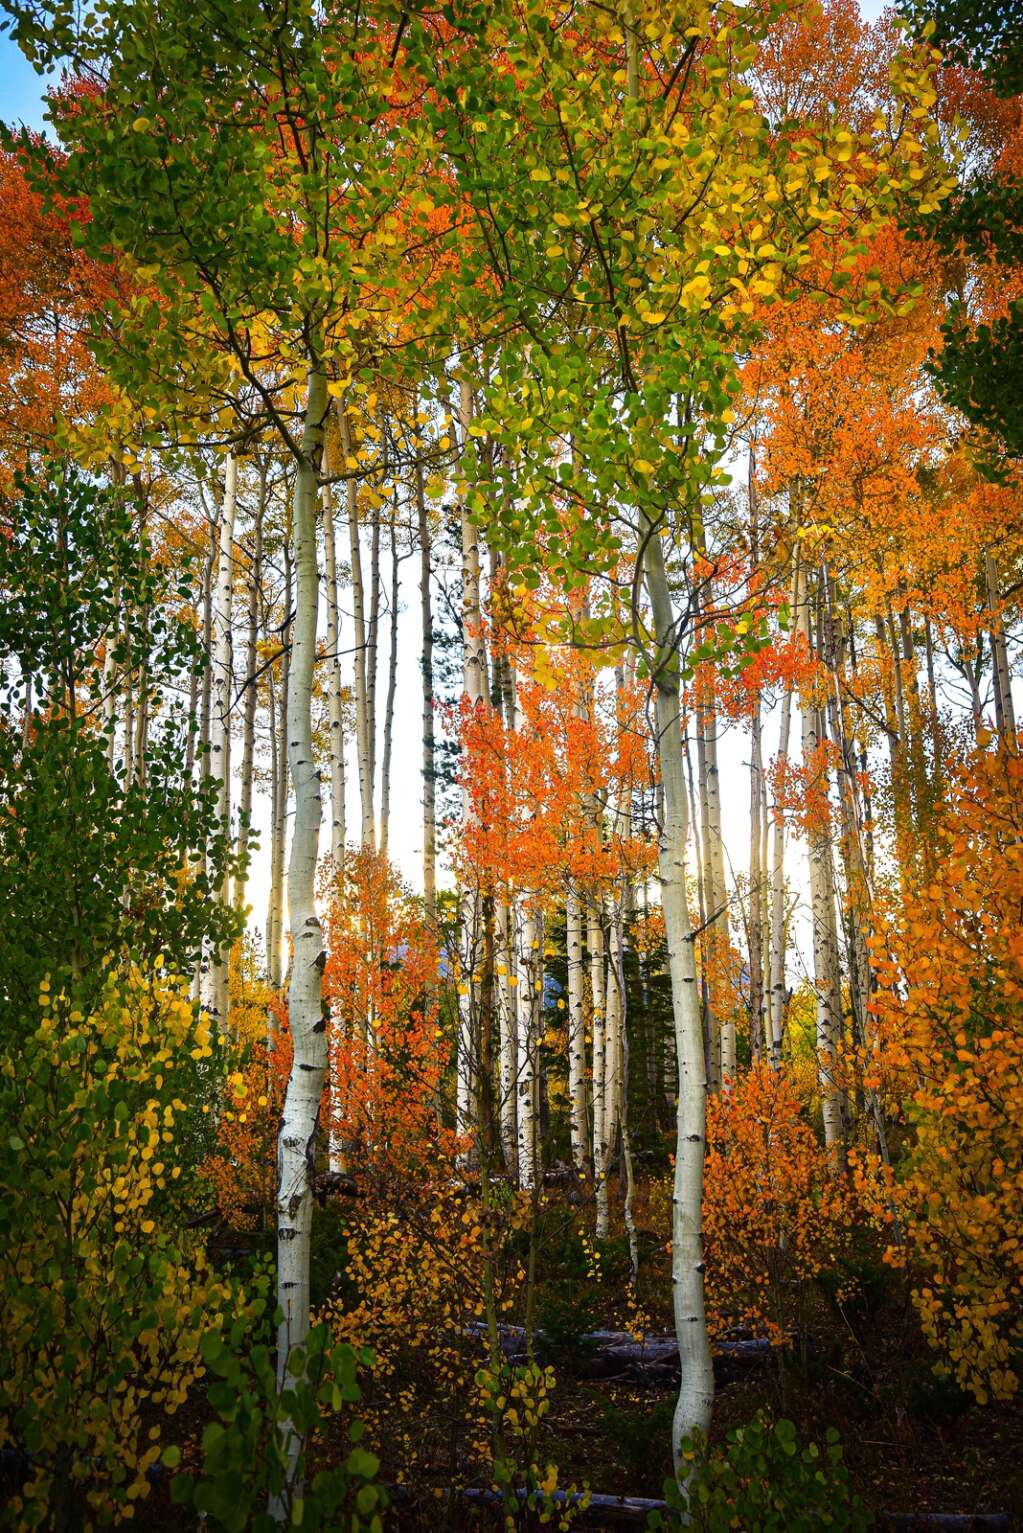 """""""All the Fall Colors"""" was captured on Salt Lick Trail in Breckenridge. Amy Marie Dlubac's work can be found at Red Buffalo Coffee & Tea and Timberline Craft Kitchen & Cocktails. 